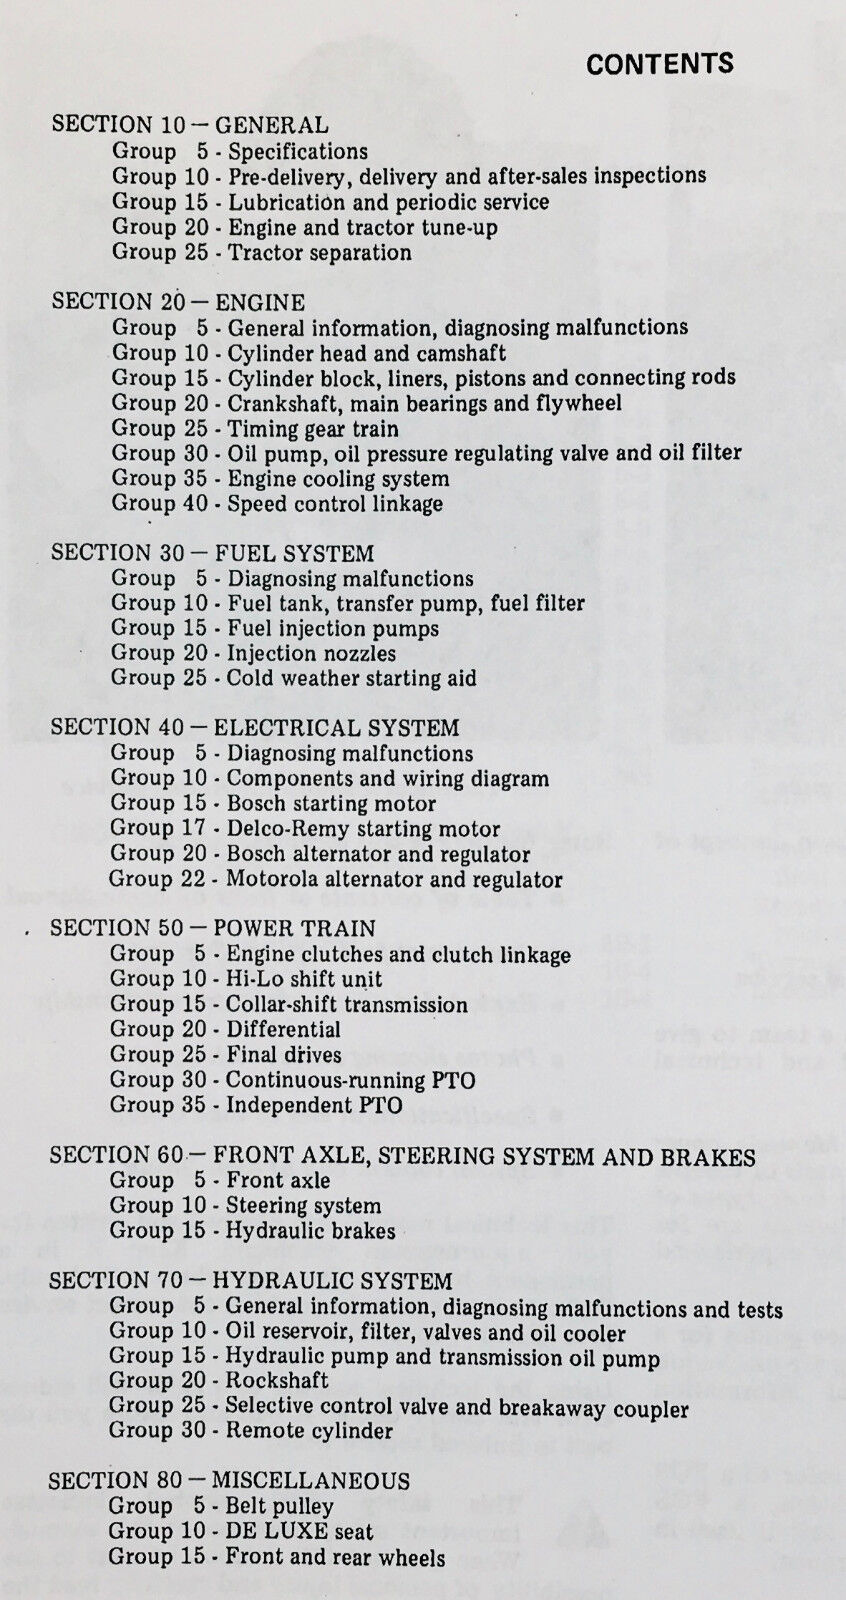 TECHNICAL SERVICE MANUAL FOR JOHN DEERE 1530 TRACTOR on john deere 1530 lights, john deere 1530 parts, john deere 1530 steering, new holland 1530 wiring diagram,